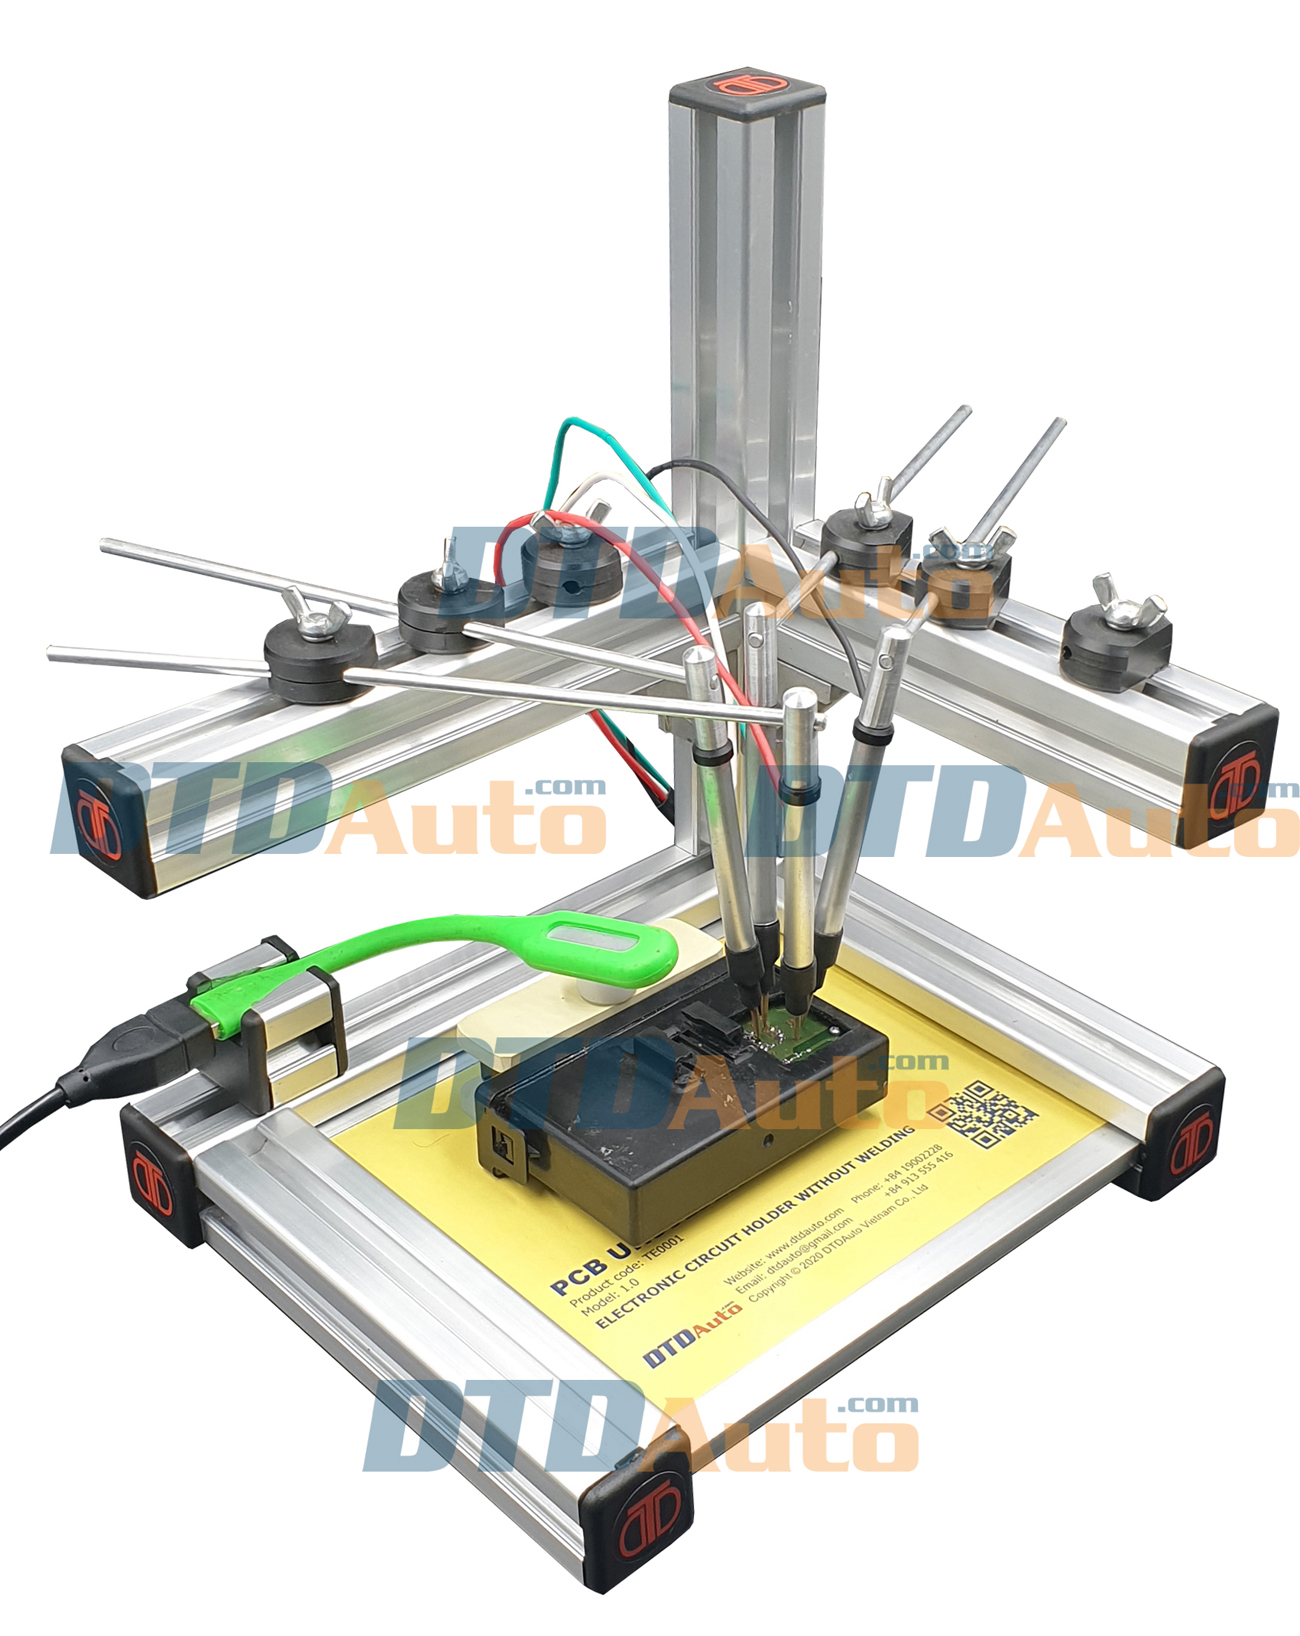 PCB UNSOLDER - ELECTRONIC CIRCUIT HOLDER WITHOUT WELDING